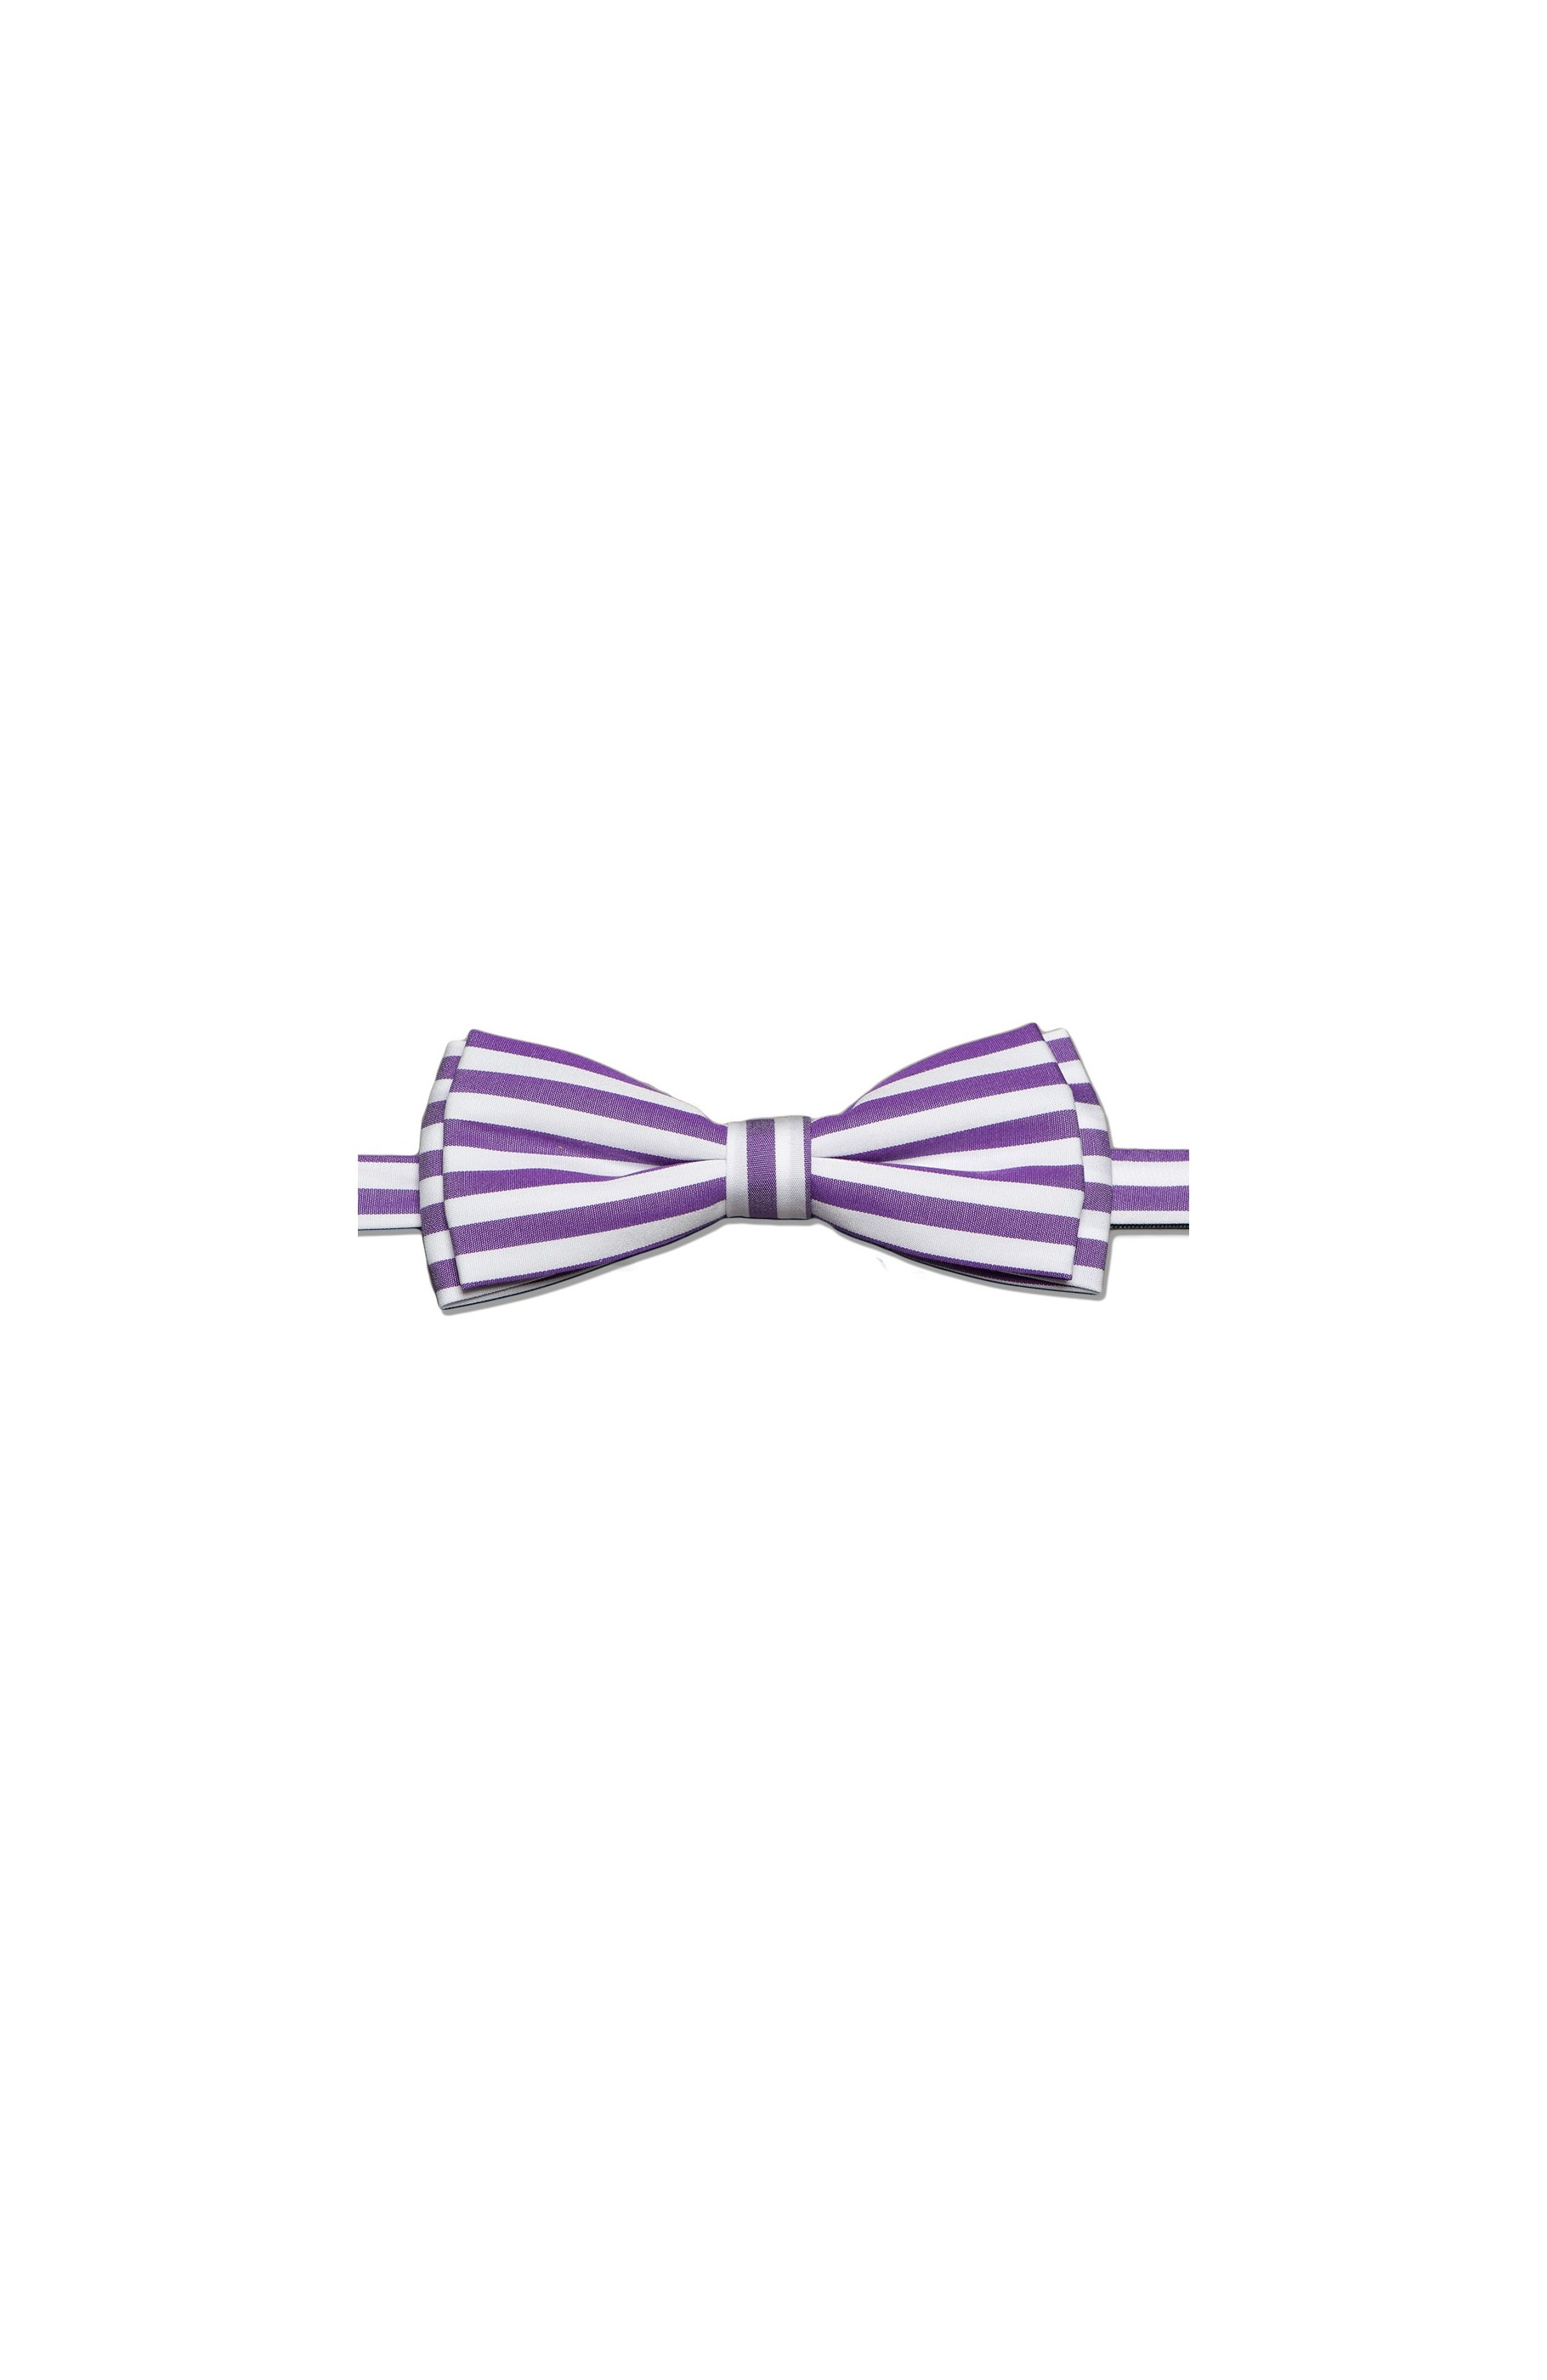 Majesté Couture Paris: Lilac bow tie | Accessories -  Hiphunters Shop